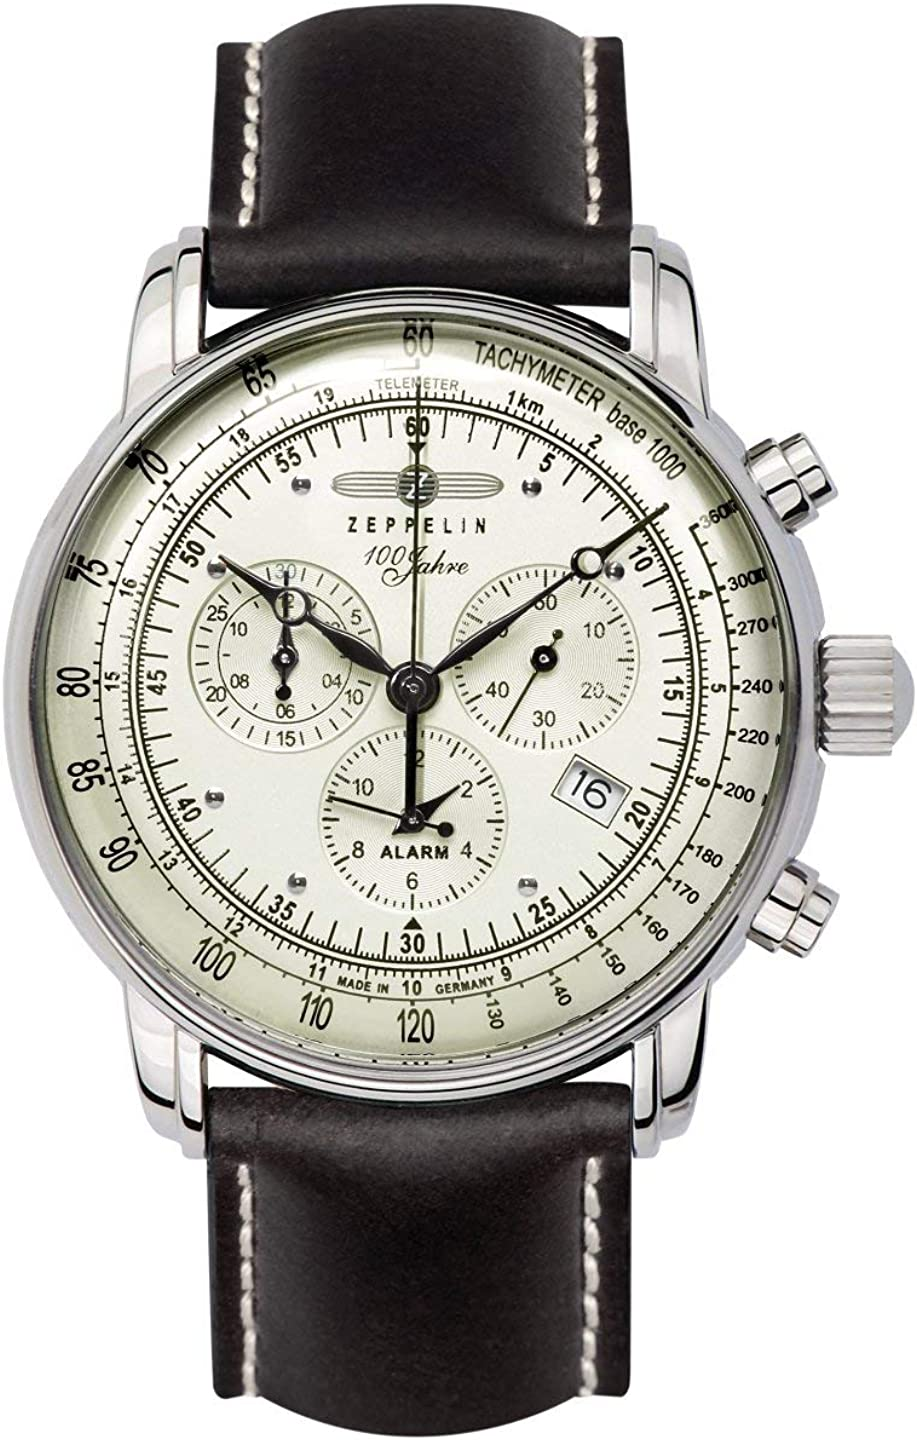 Zeppelin 8680-3 Men's Watch with Alarm Stopwatch